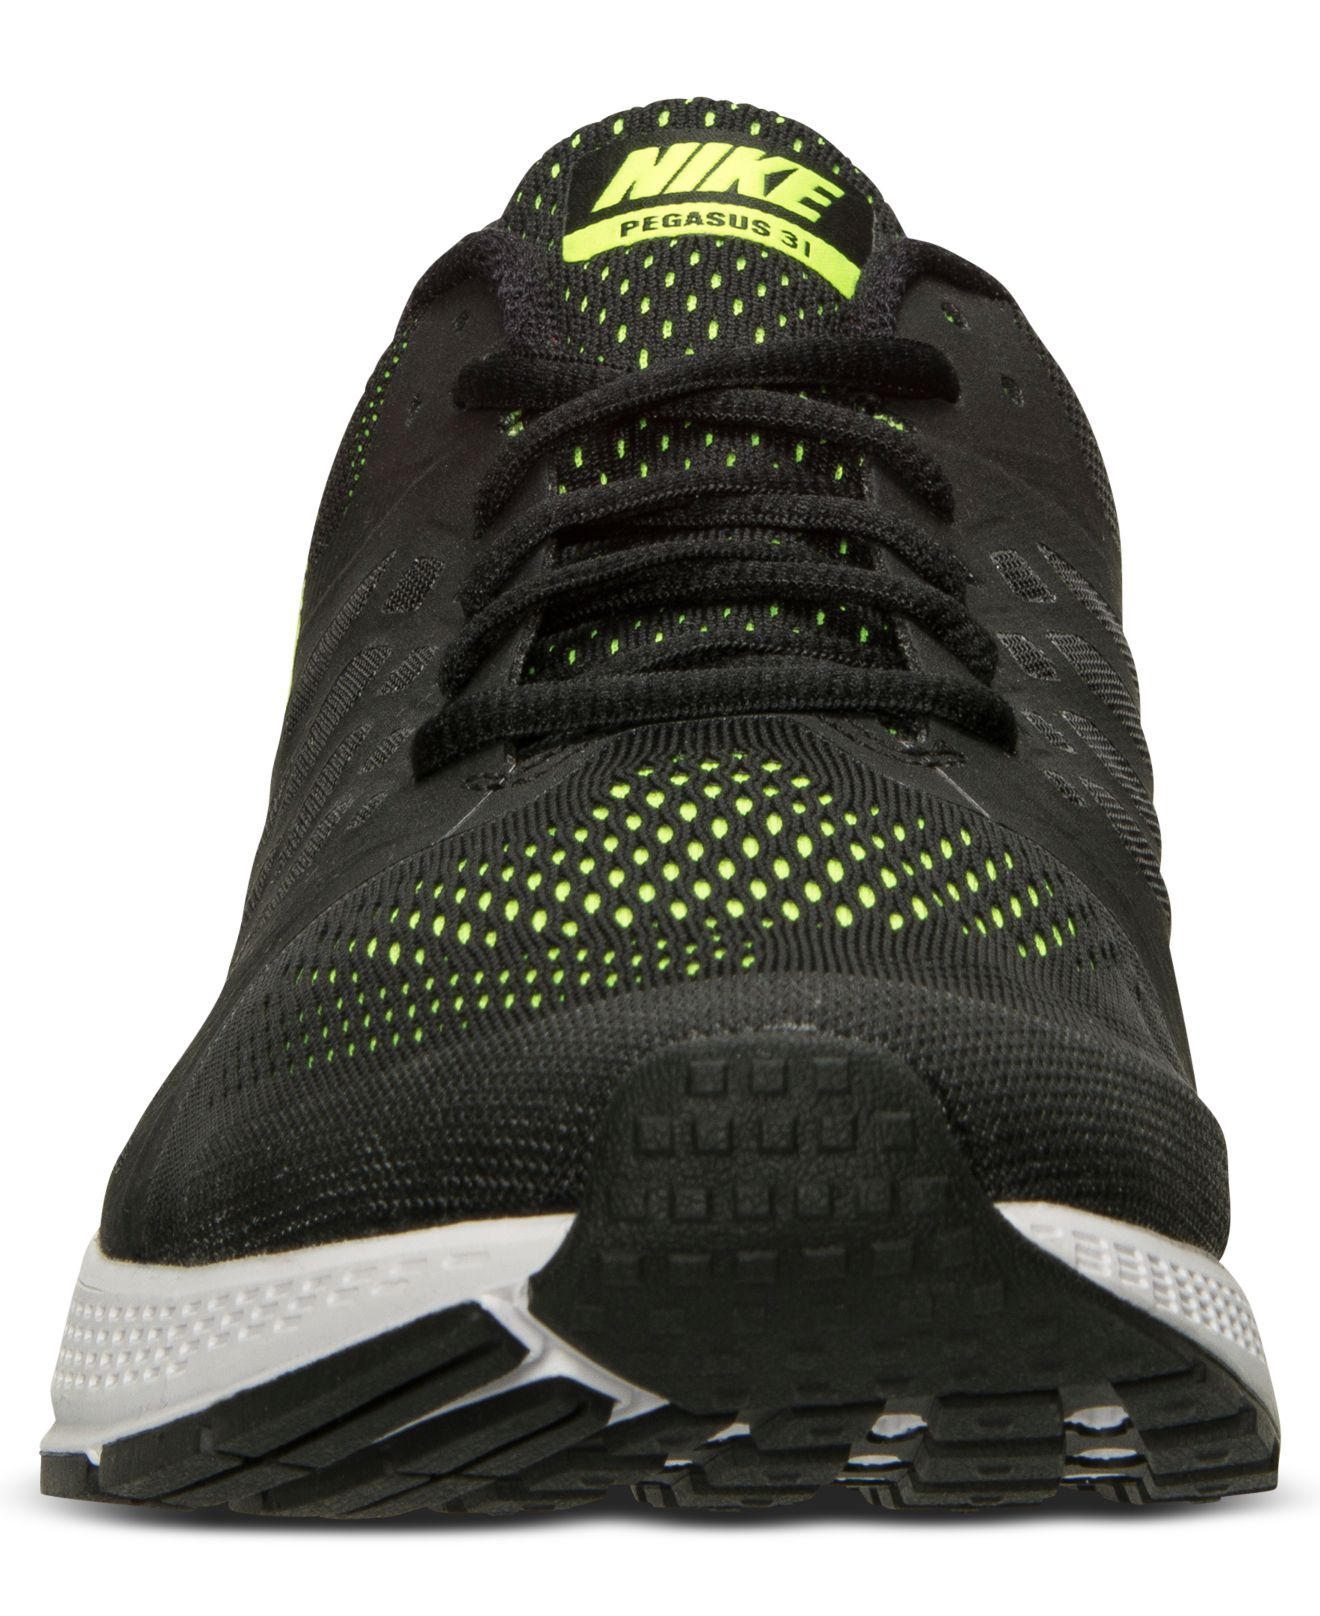 Lyst Nike Men'S Zoom Pegasus 31 Running Sneakers From Finish Line